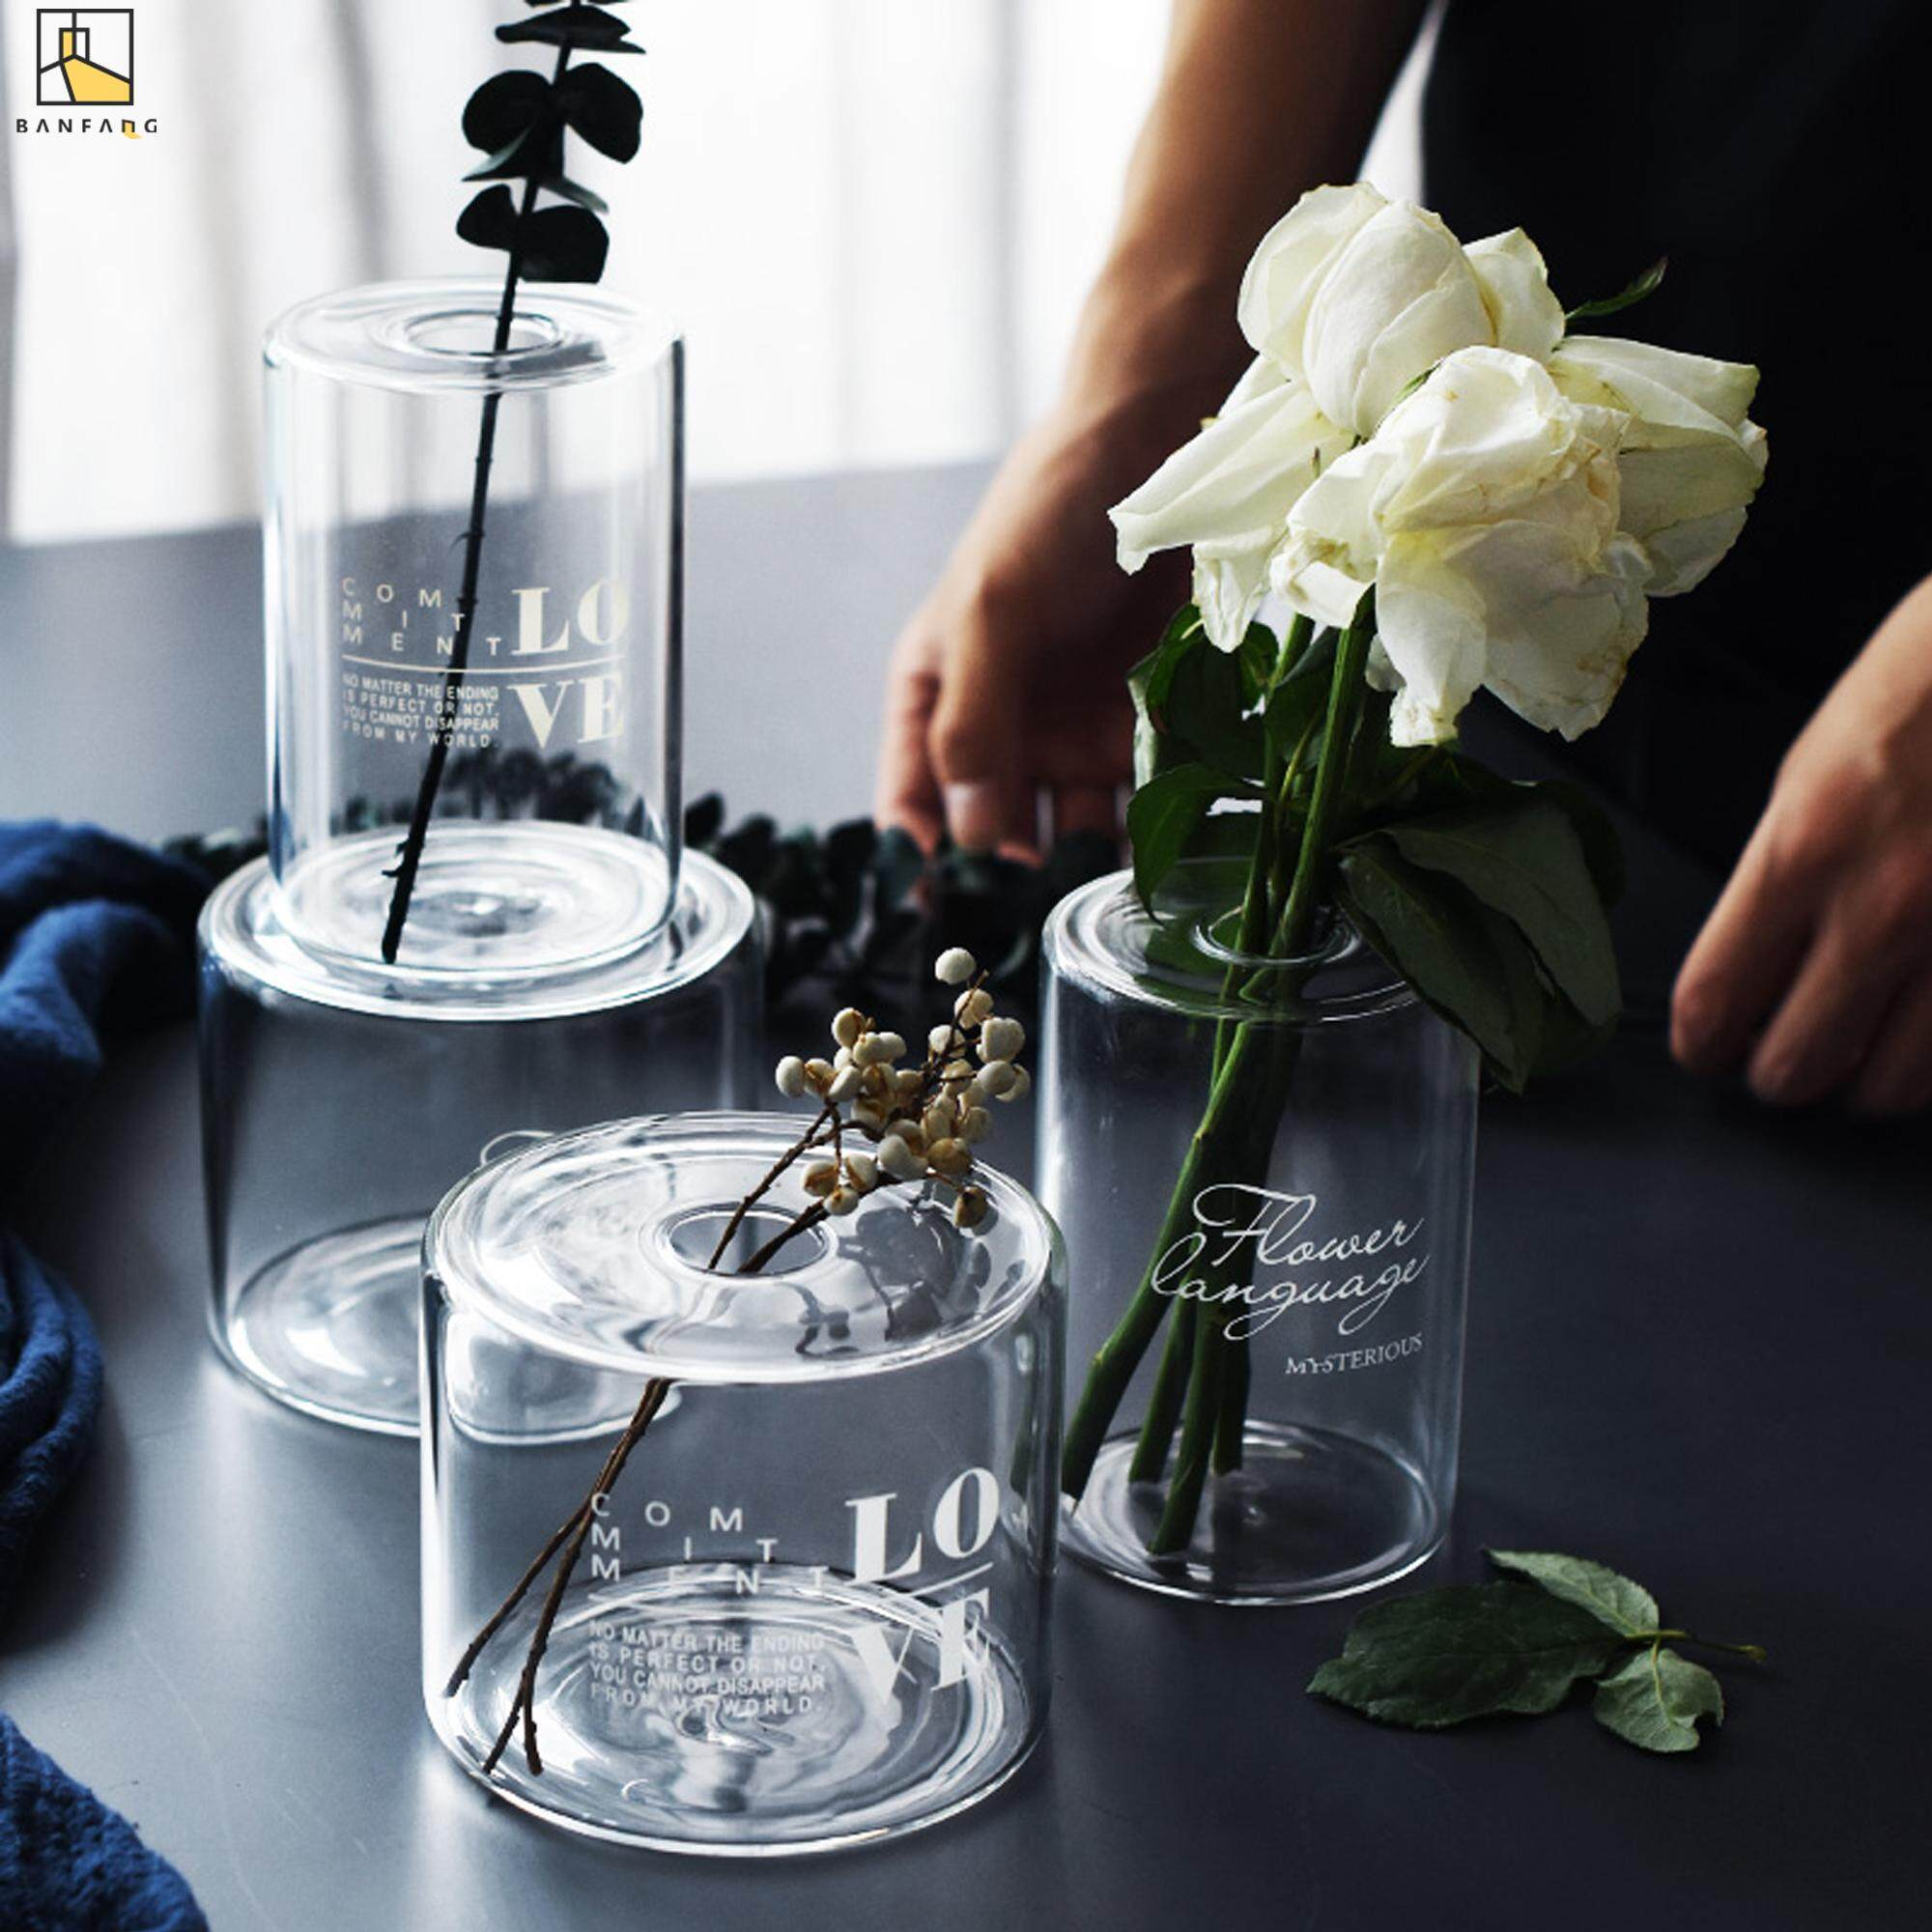 BANFANG Nordic lamp worker glass vase creative dry flower aroma bottle small mouth flower water bottle decoration decoration